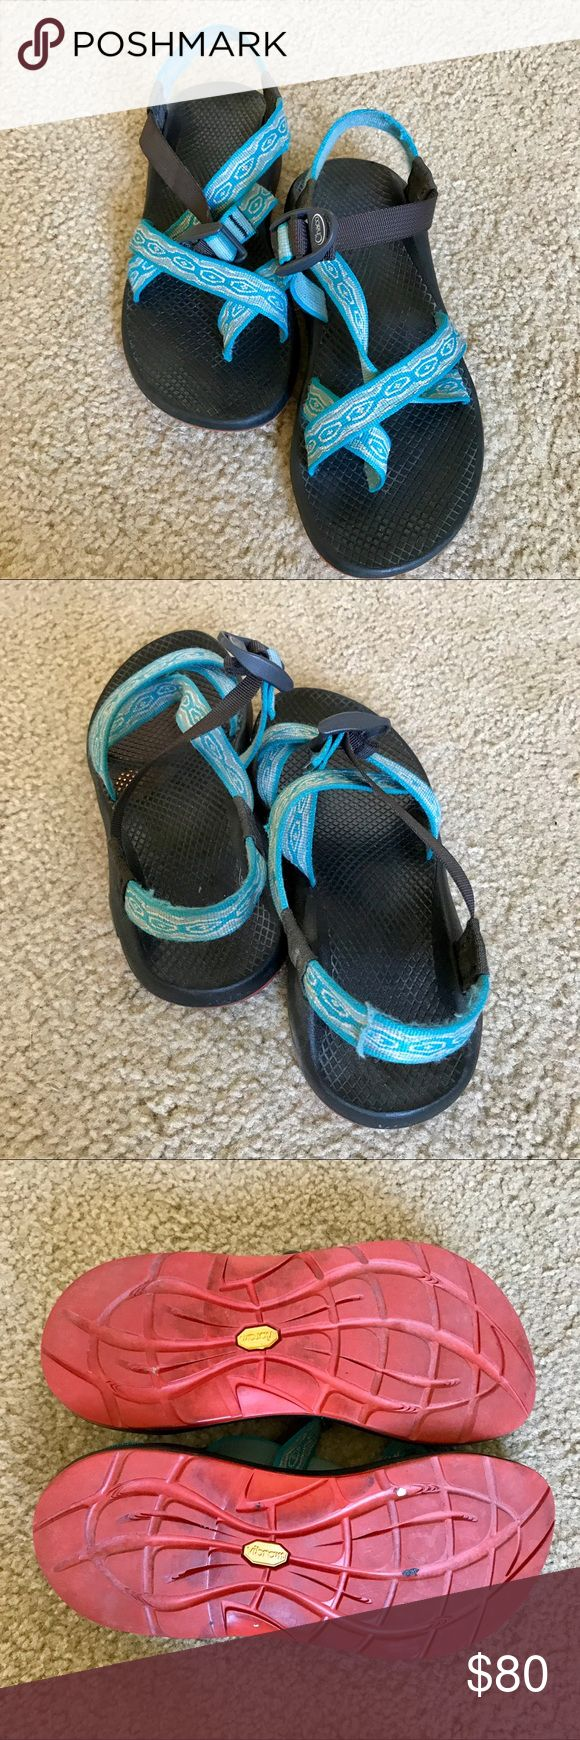 "Chaco Sandals! Women's size 8 Chacos! Blue patterned webbing with orange bottom! Love these but gotta make some $$ for pharmacy school! Open to offers and/or trades :) WOULD LOVE TO TRADE FOR A SOLID BLACK PAIR. These were ""rechaco'd"" by Chaco's repair program to change the pattern/color of the straps. This exact one is not sold in stores but only available by Sending them to Chaco and paying for a re-Chaco! Chaco Shoes Sandals"